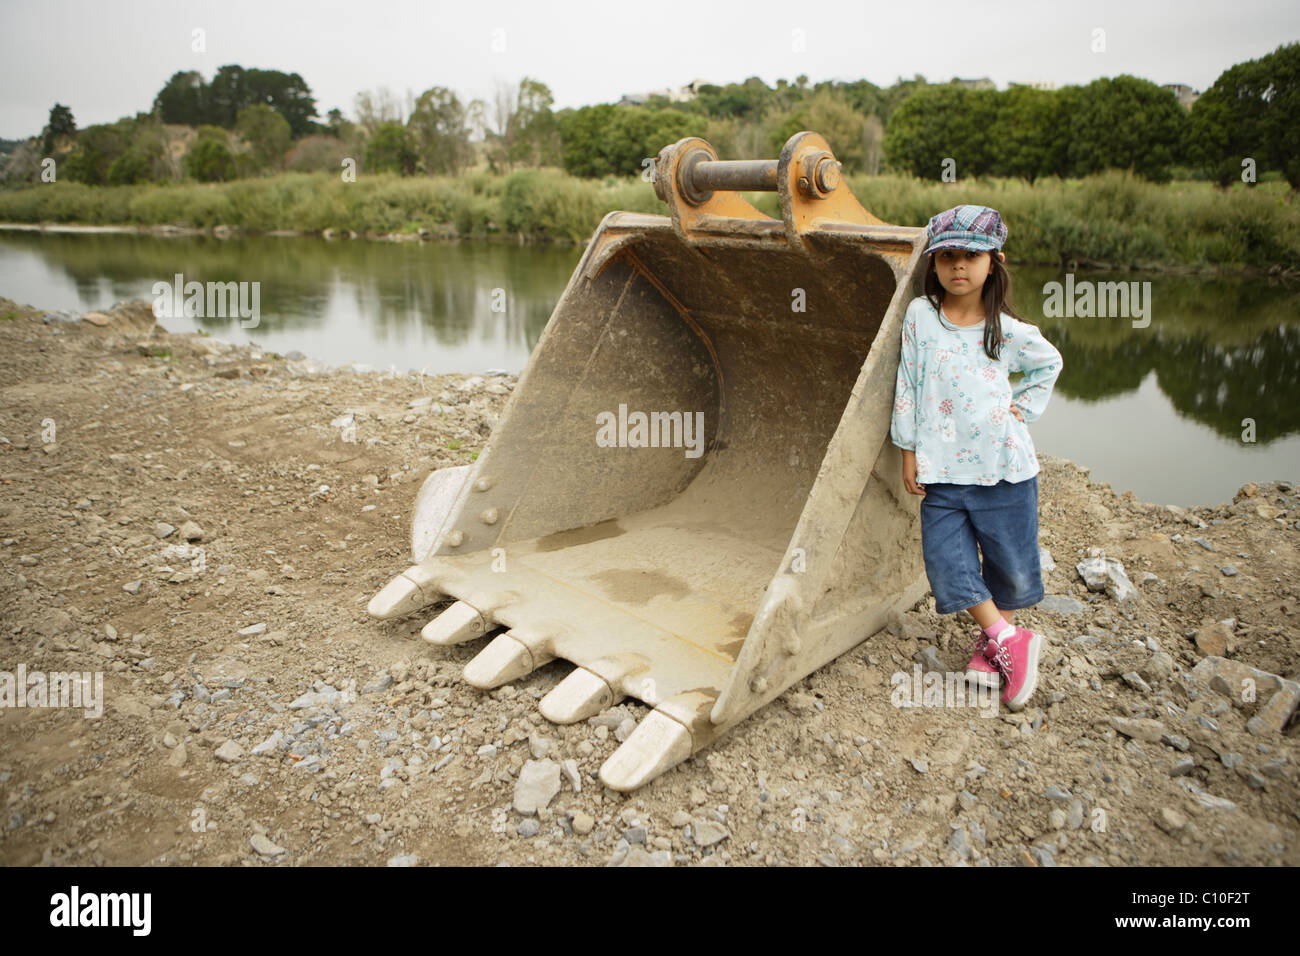 Five year old girl leans against digger shovel at the construction of flood defences, Manawatu river, Palmerston - Stock Image